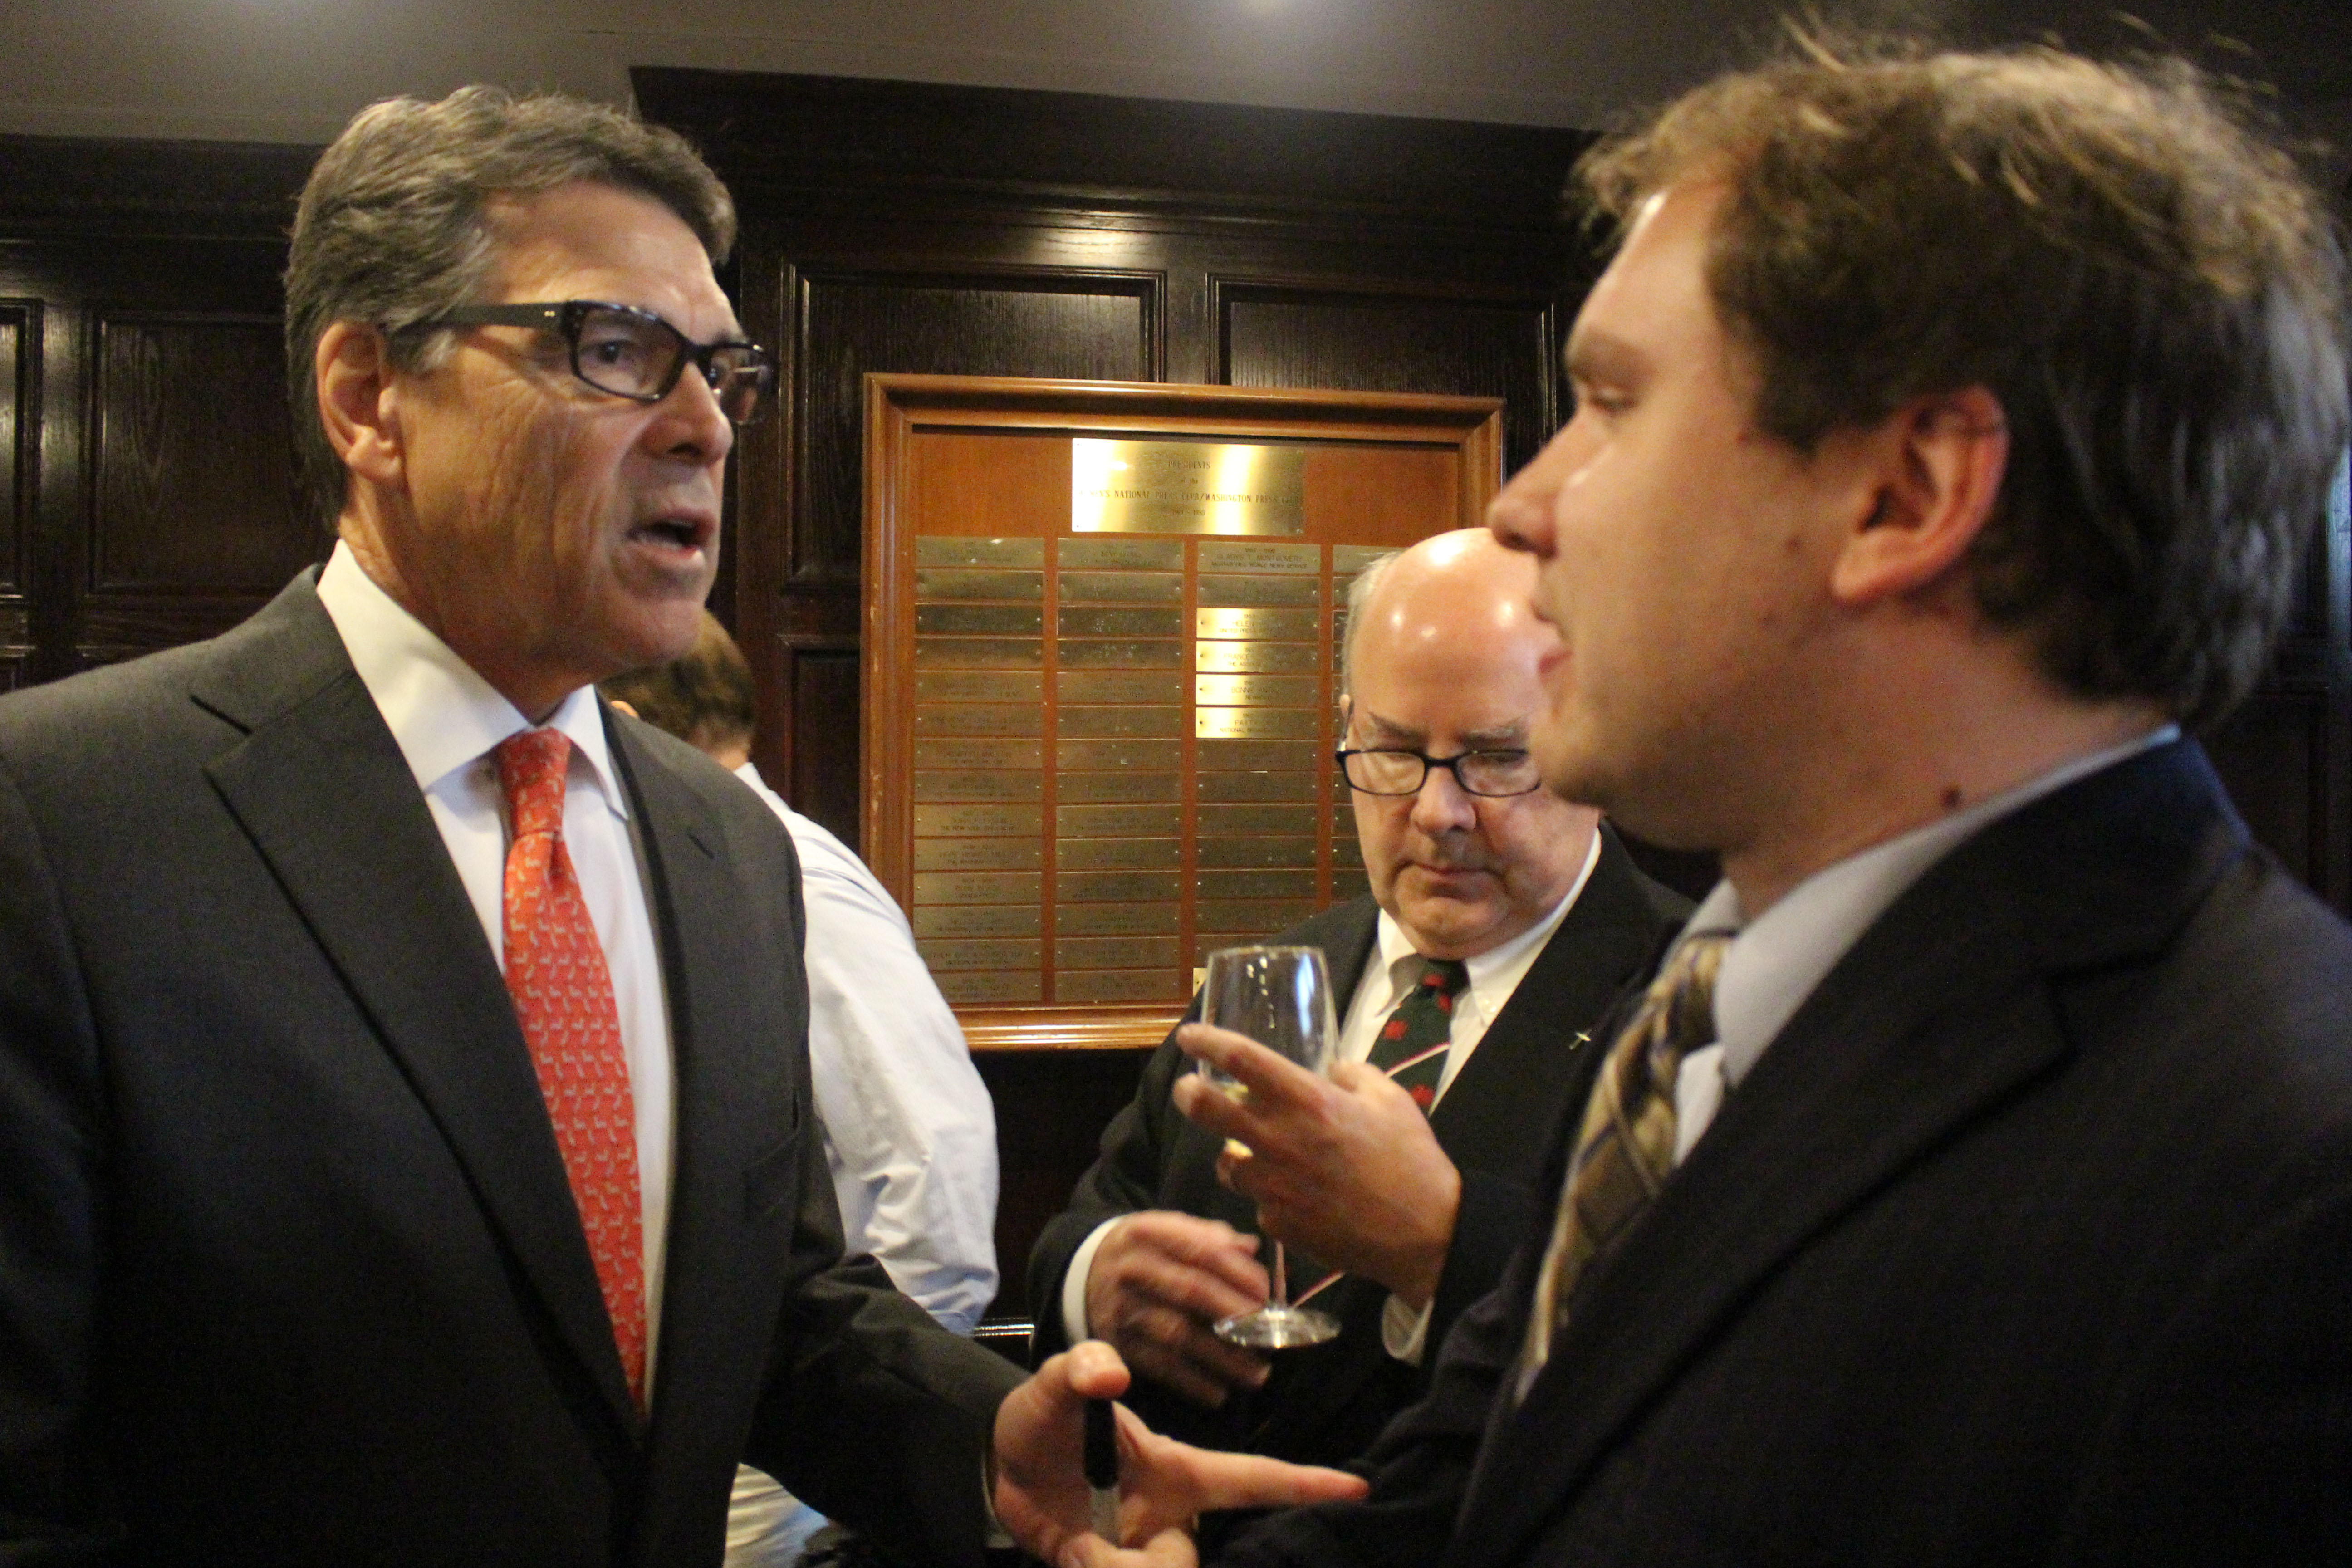 Former Texas Gov. Rick Perry speaking with RespectAbility Fellow James Trout at the National Press Club in Washington, D.C. on July 2, 2015.